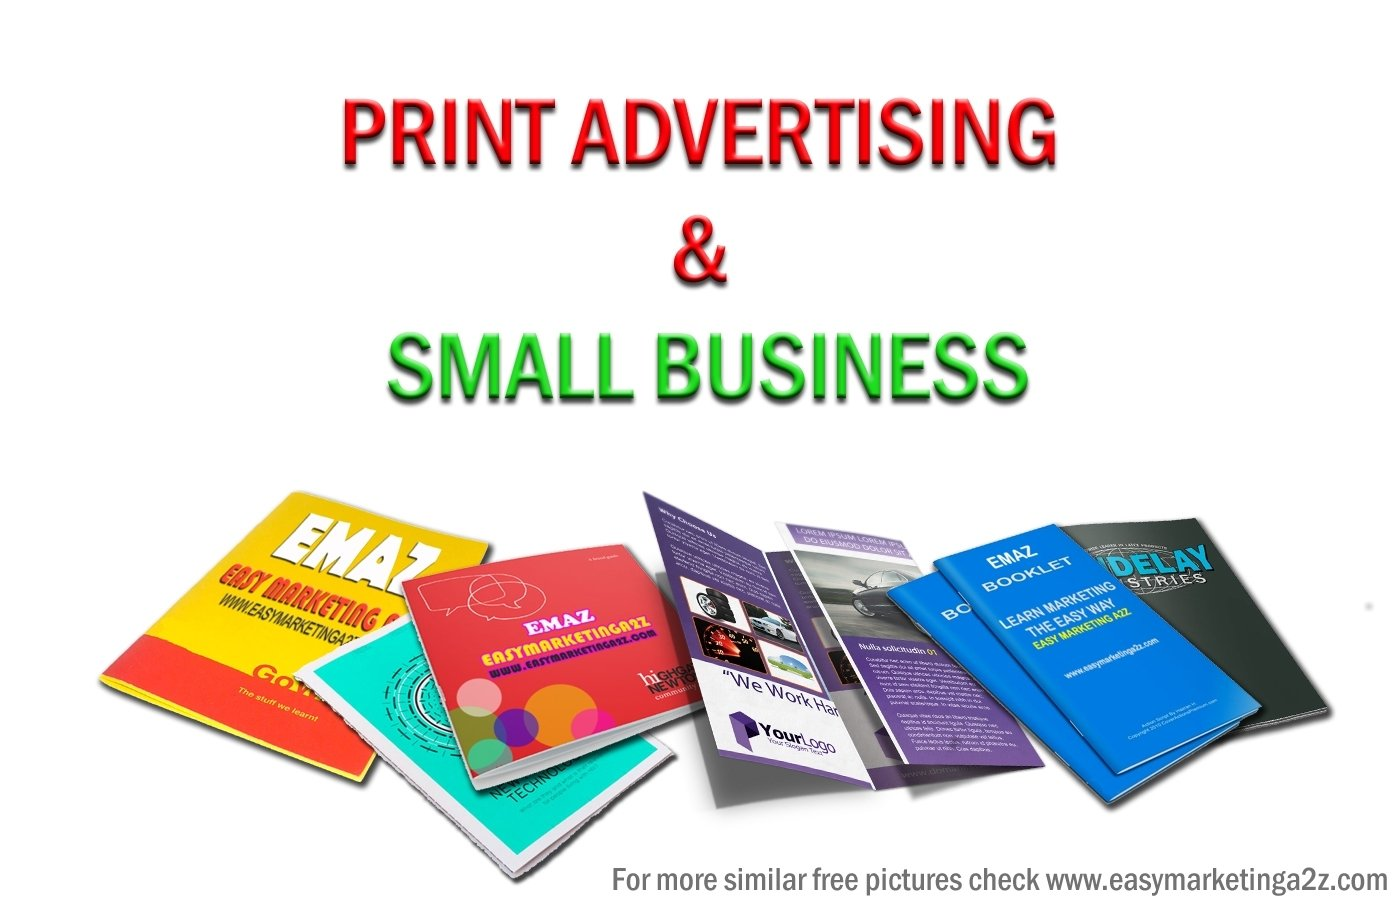 10 Unique Advertising Ideas For Small Business 5 advertising ideas for small business that will deliver easy 1 2020